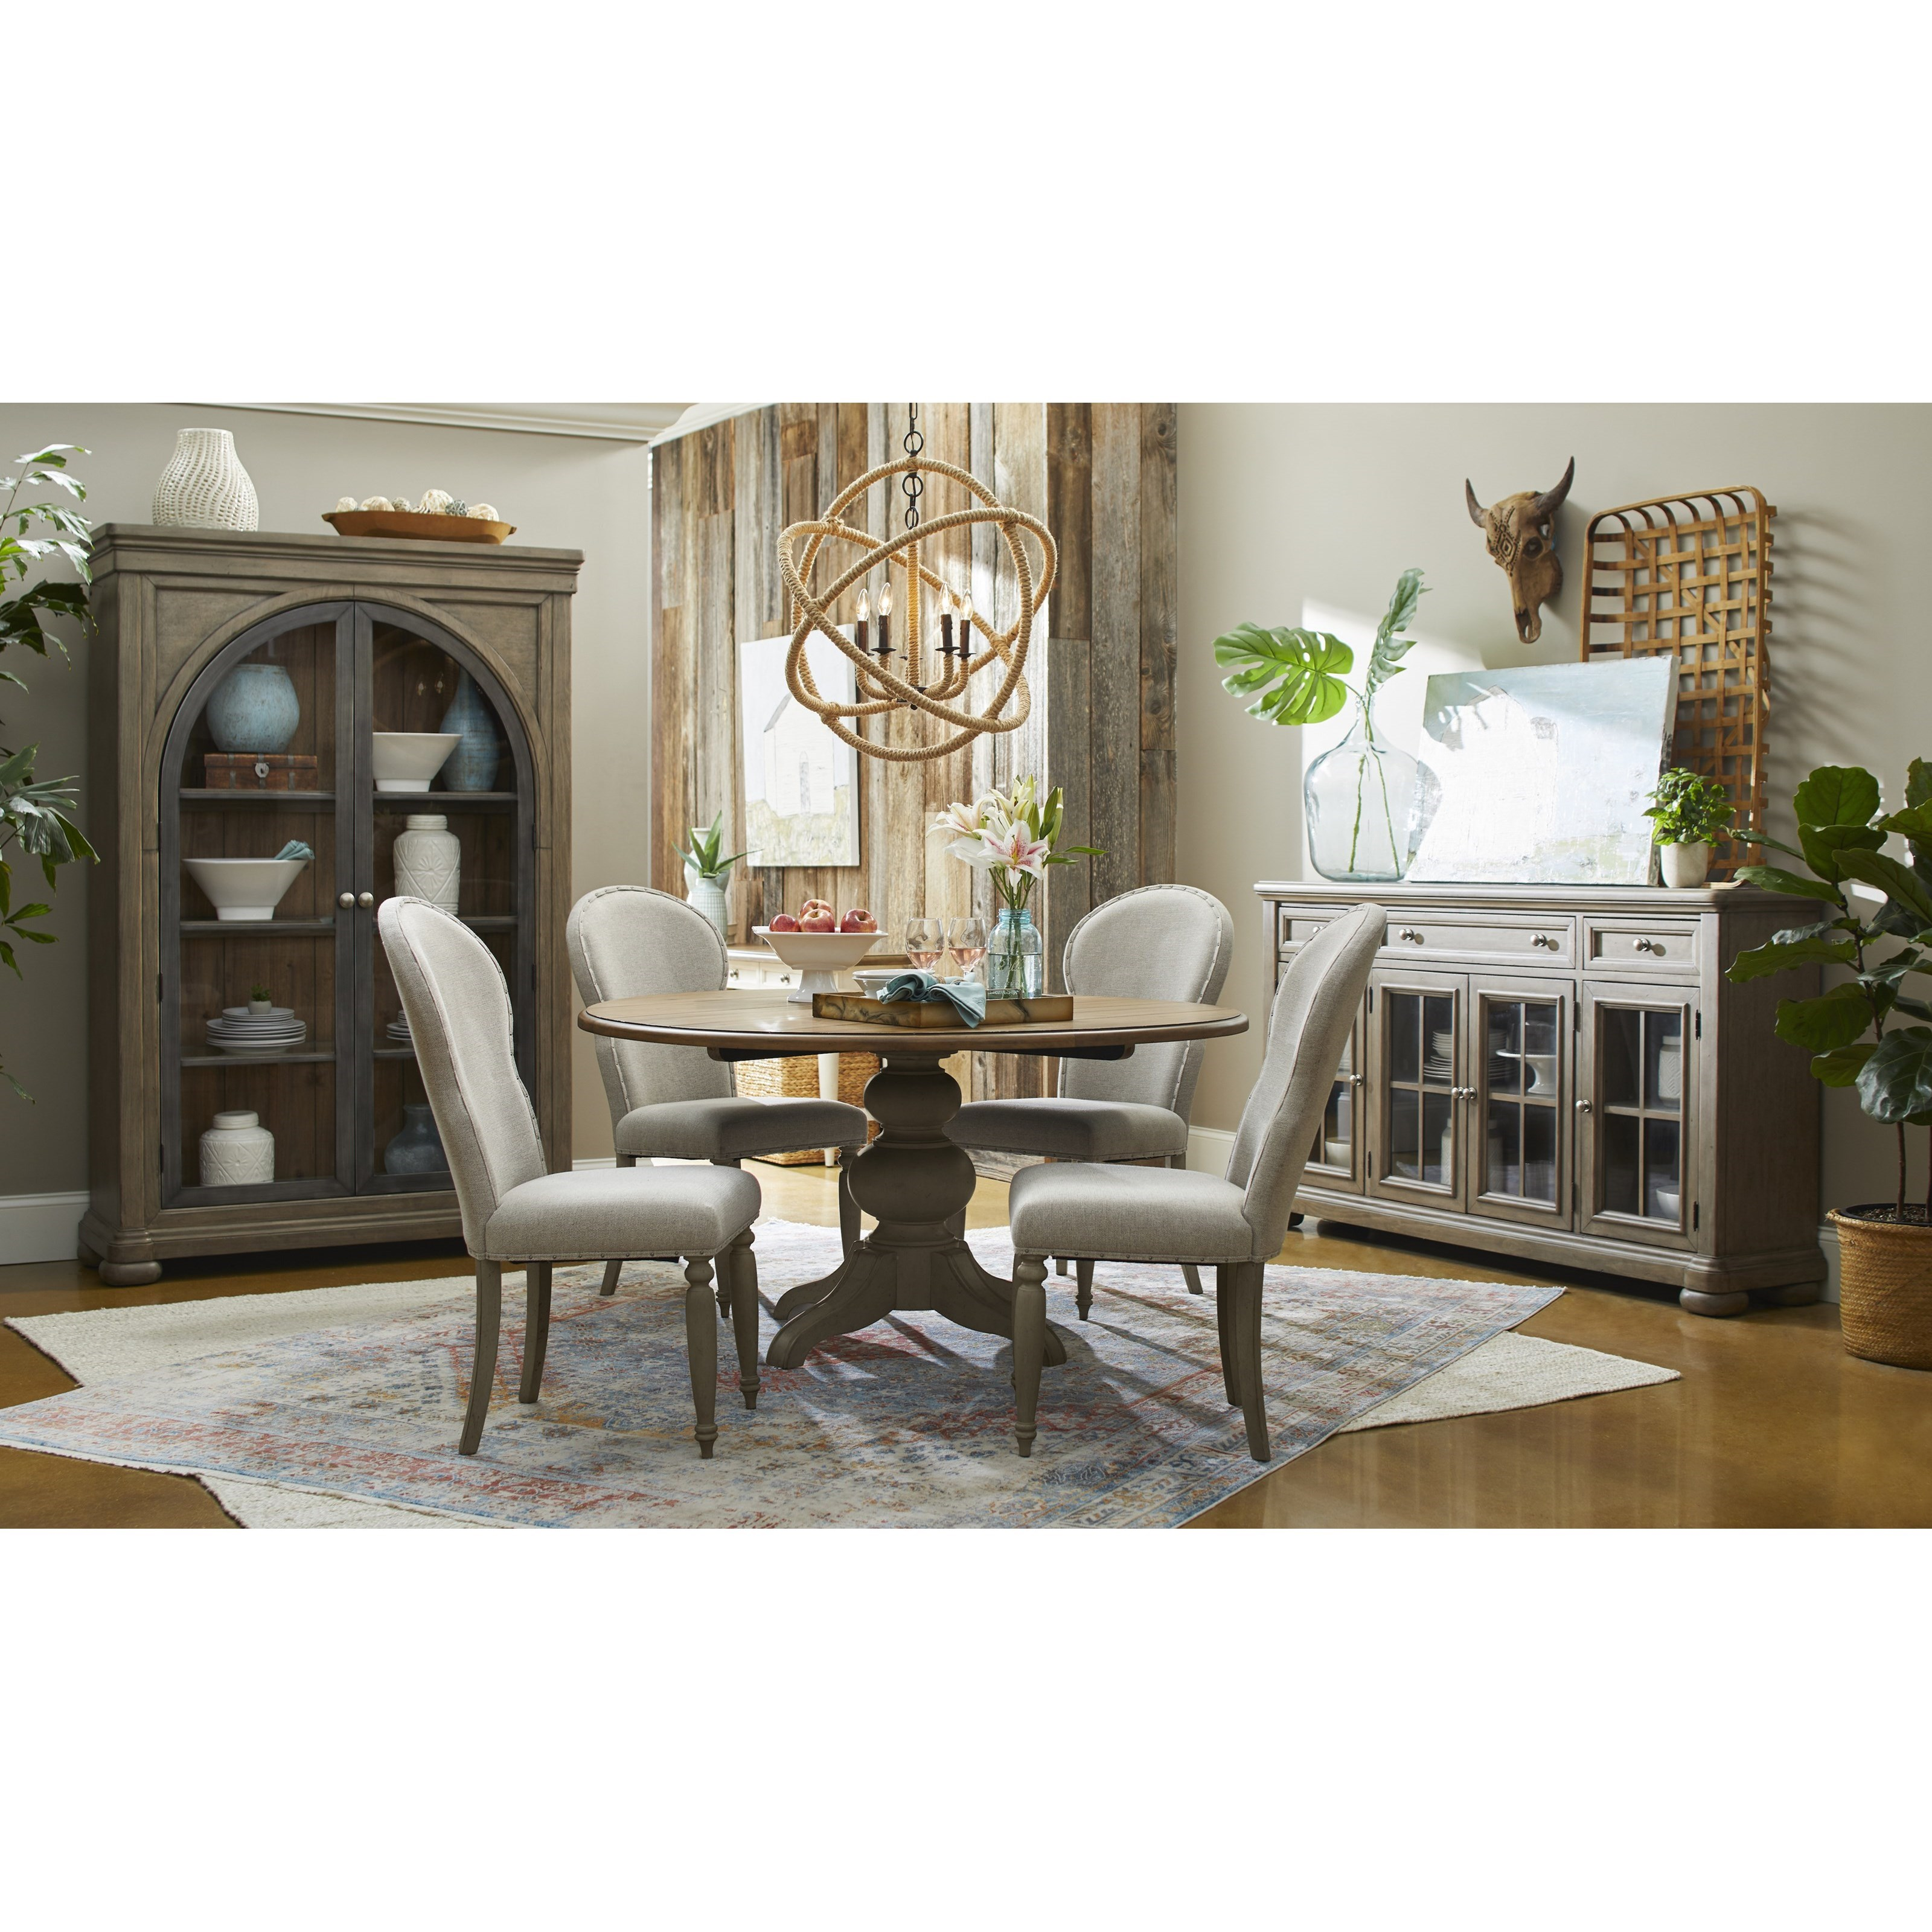 Nashville Casual Dining Room Group by Trisha Yearwood Home Collection by Klaussner at Johnny Janosik